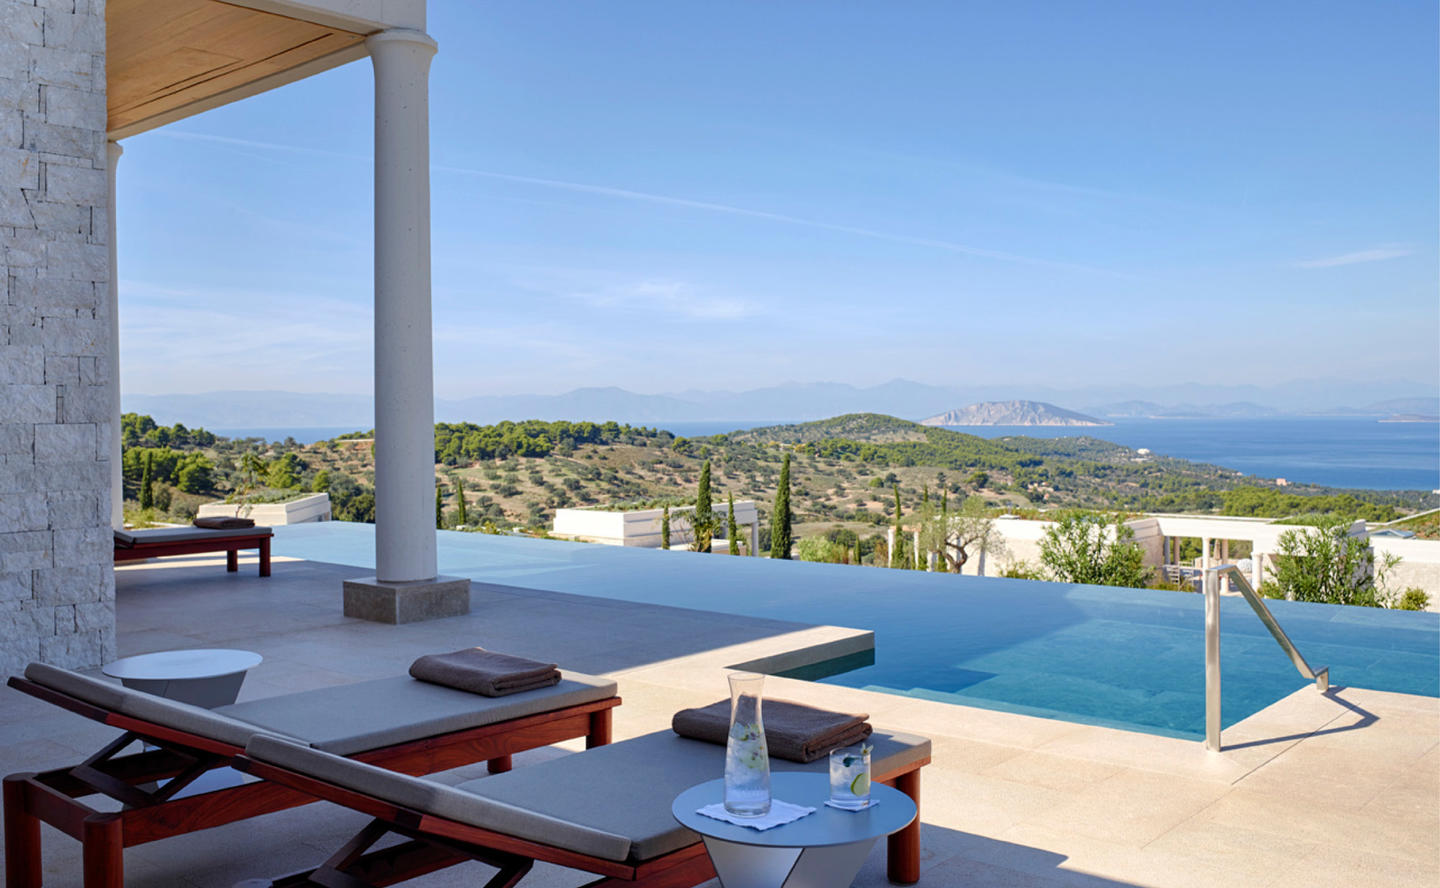 Suite Swimming Pool, Villa 20 - Amanzoe, Greece